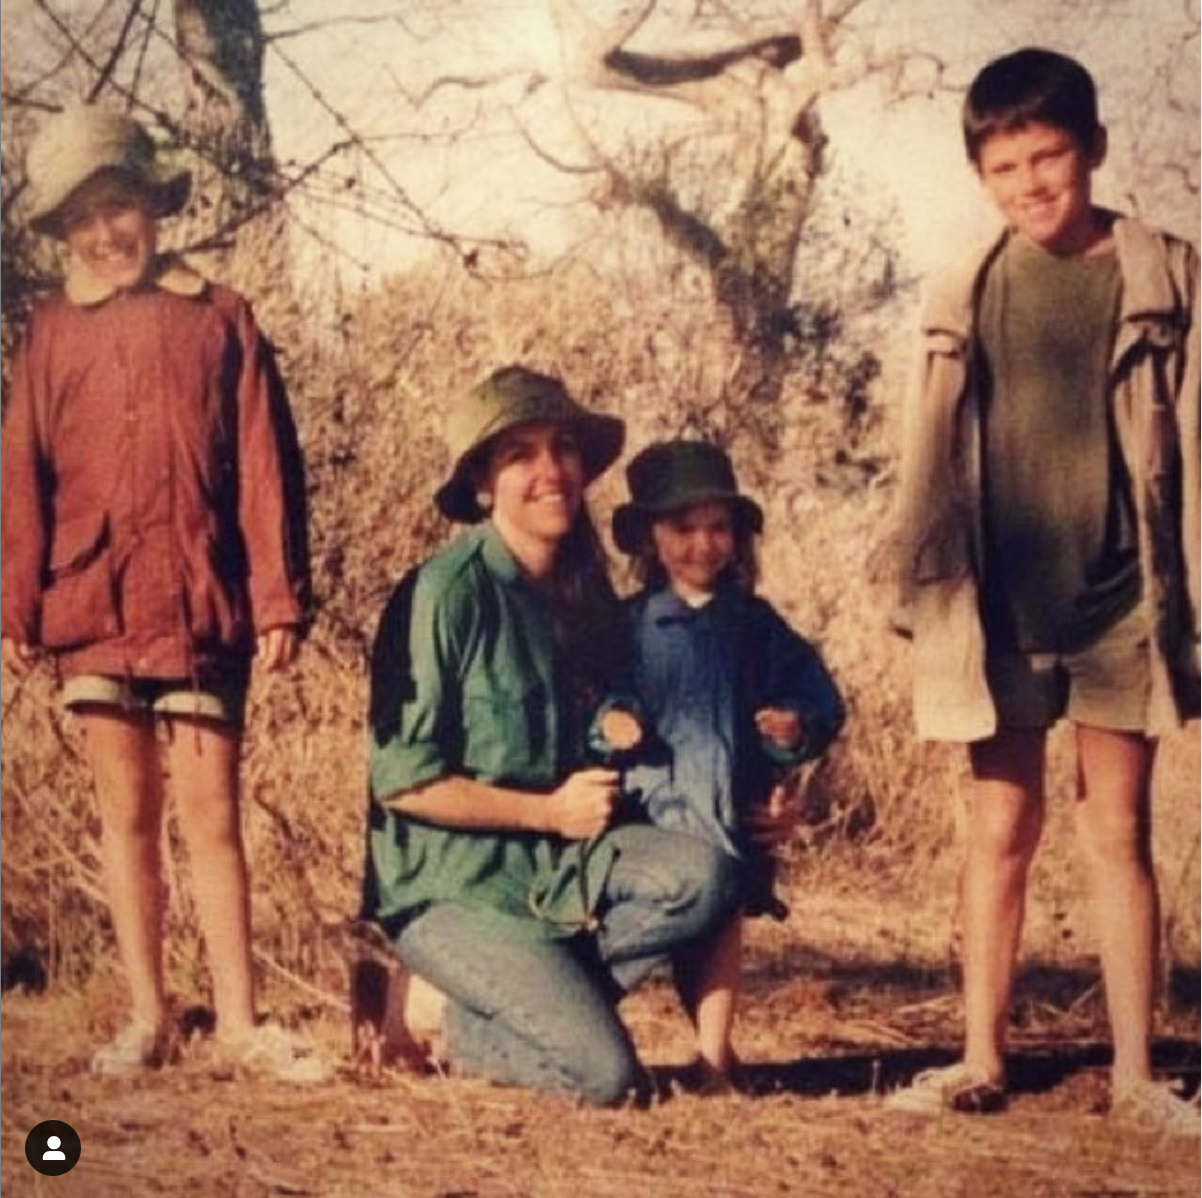 Hattie with her Mum and brothers in Kenya, where she grew up.